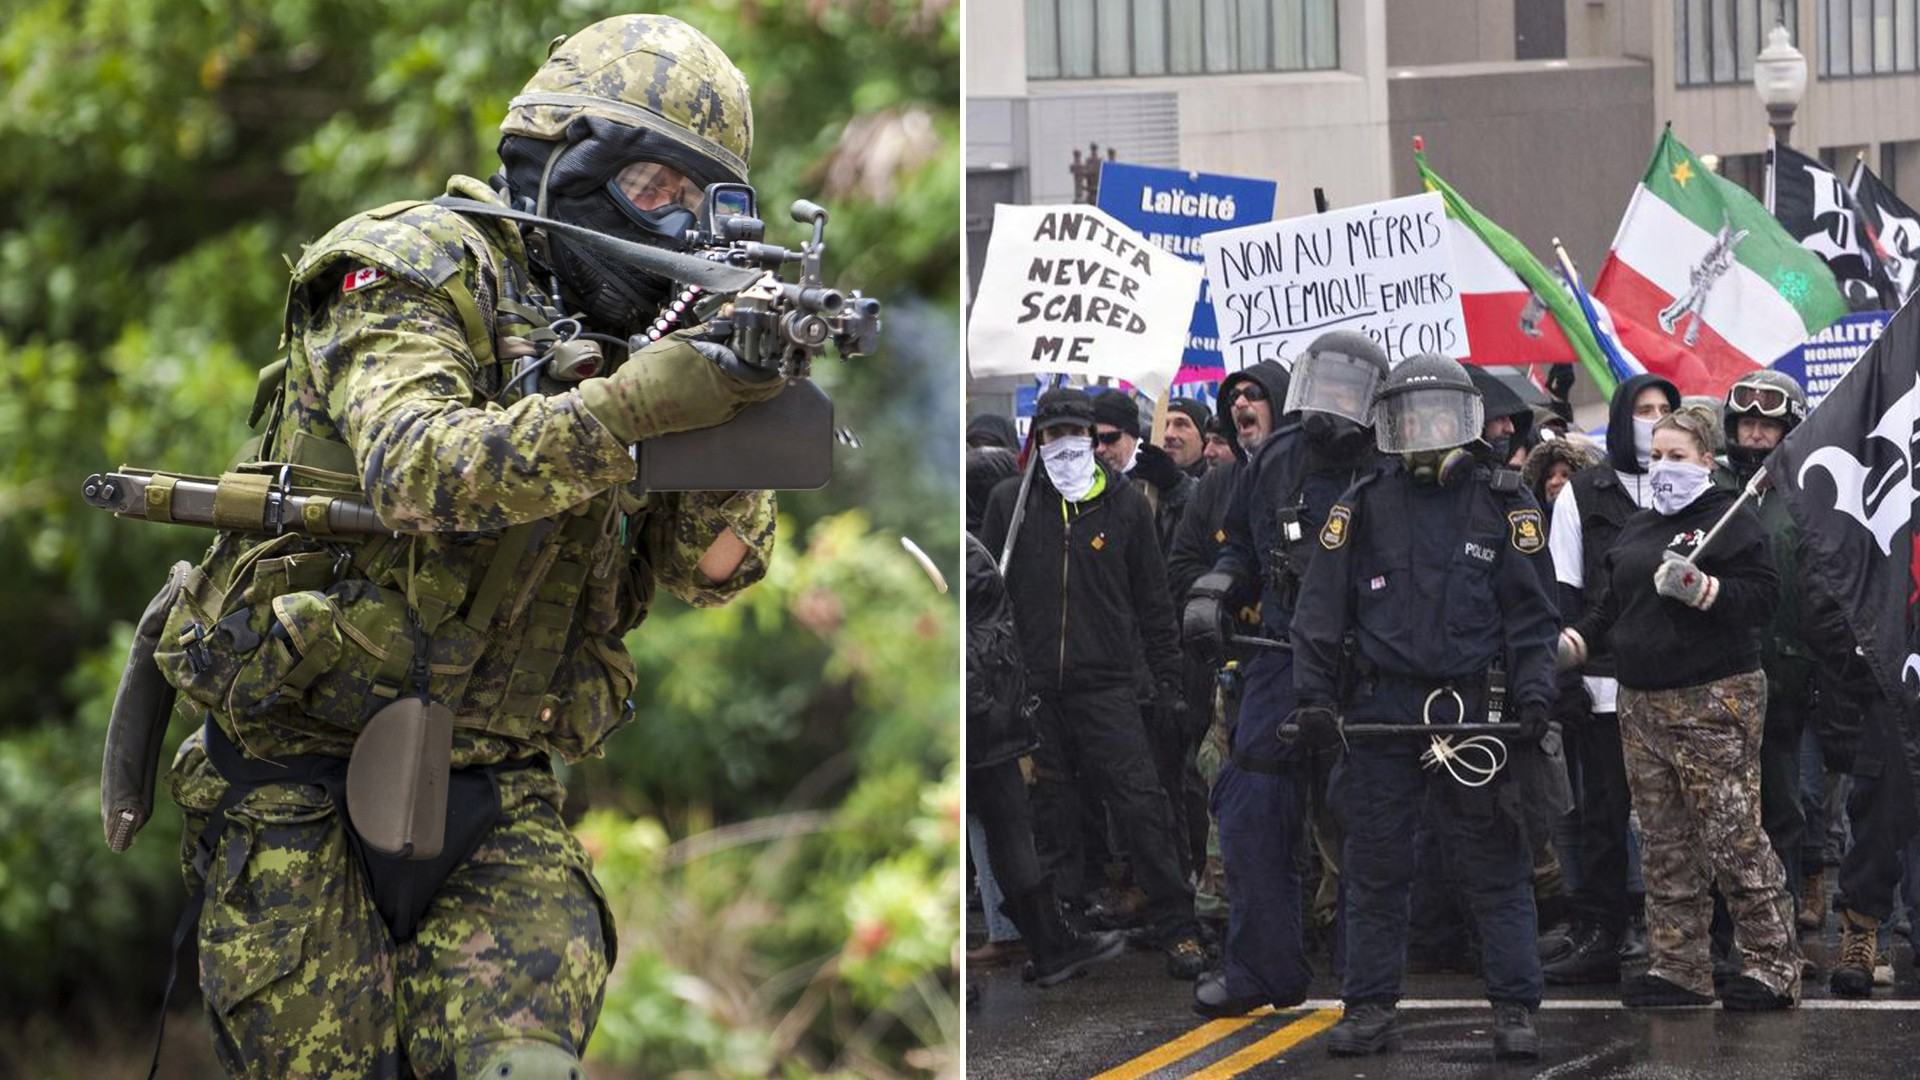 infiltration Canadian Forces fascism Nazi military violence youth paramilitary hate racism xenophobia islamophobia anti-semitism